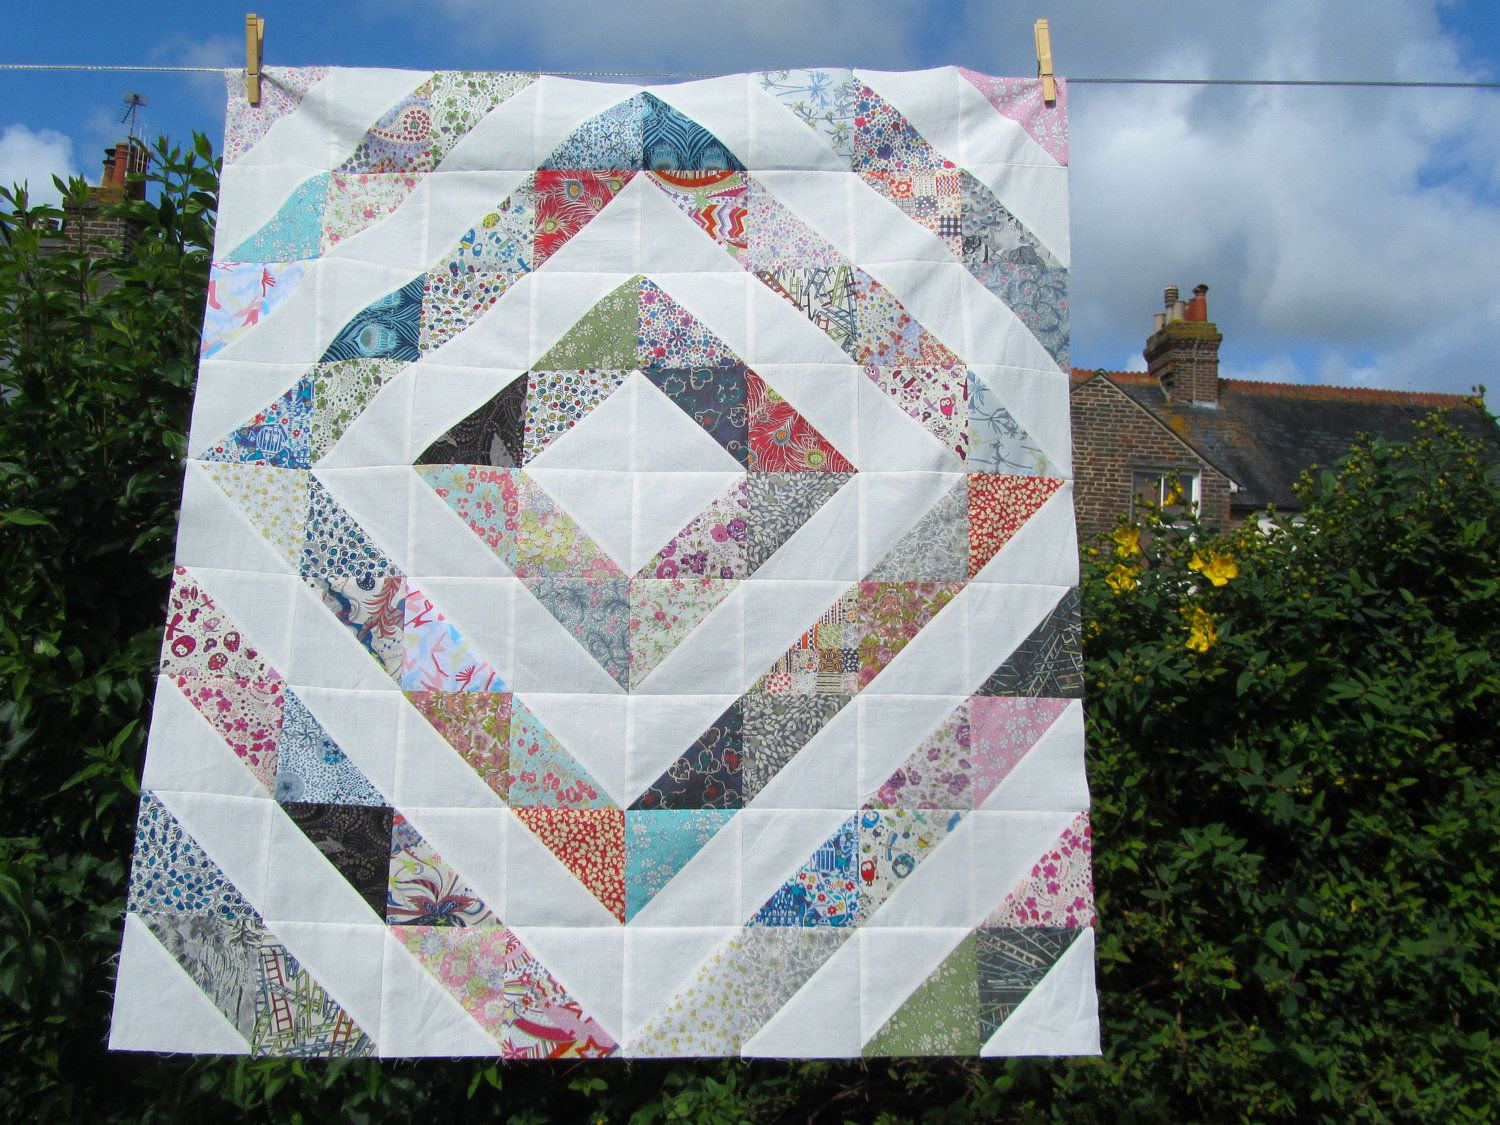 Liberty of London ispiration quilt | Passions | Pinterest ... : quilt passions - Adamdwight.com